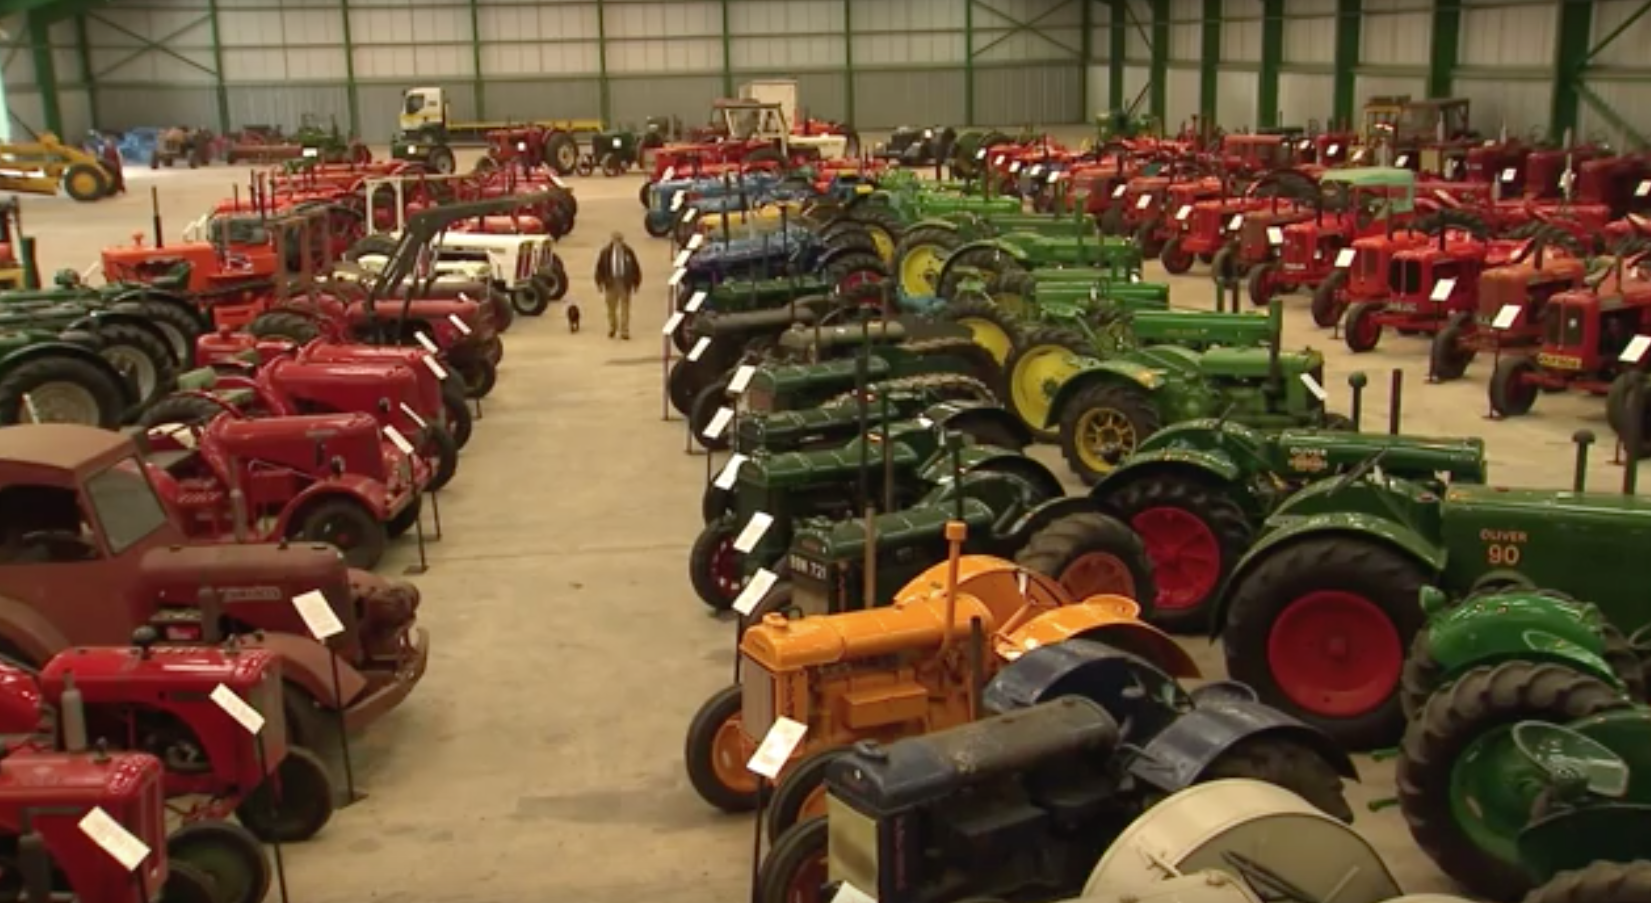 Farmer Is Putting 230 Tractors Up For Auction, Family Wonders What Will Come Next